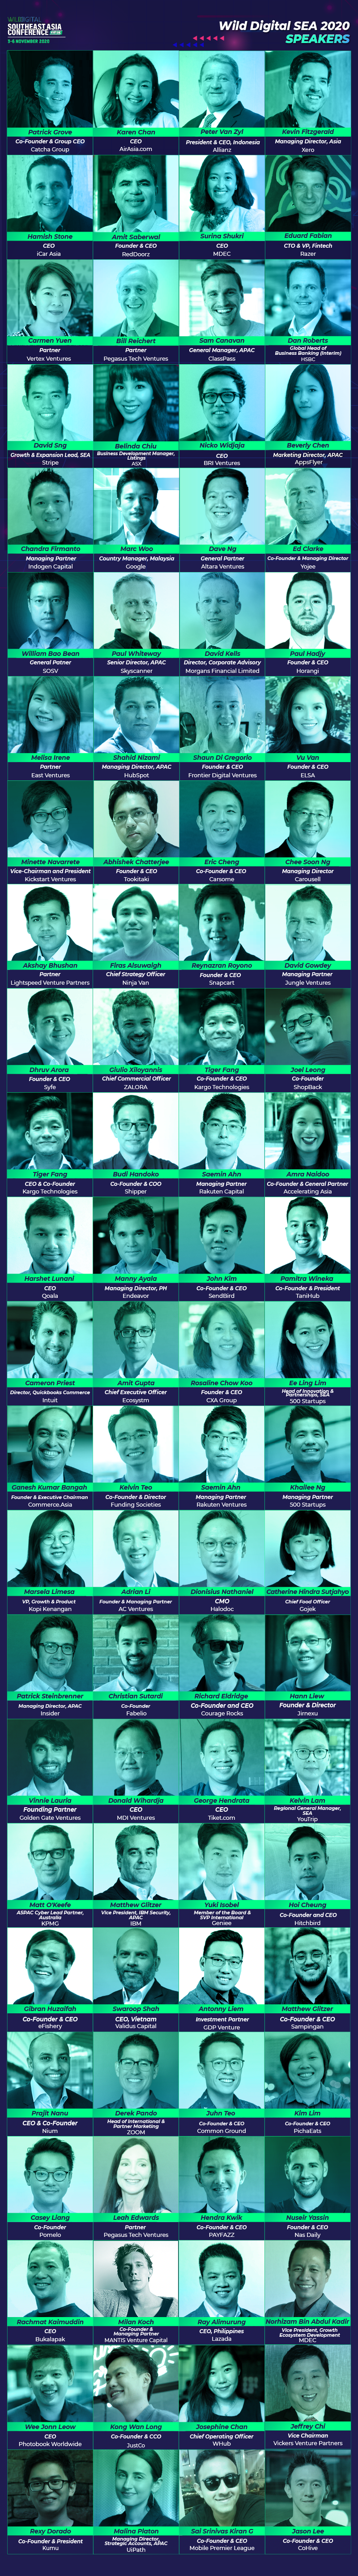 Speaker lineup for WD SEA 2020